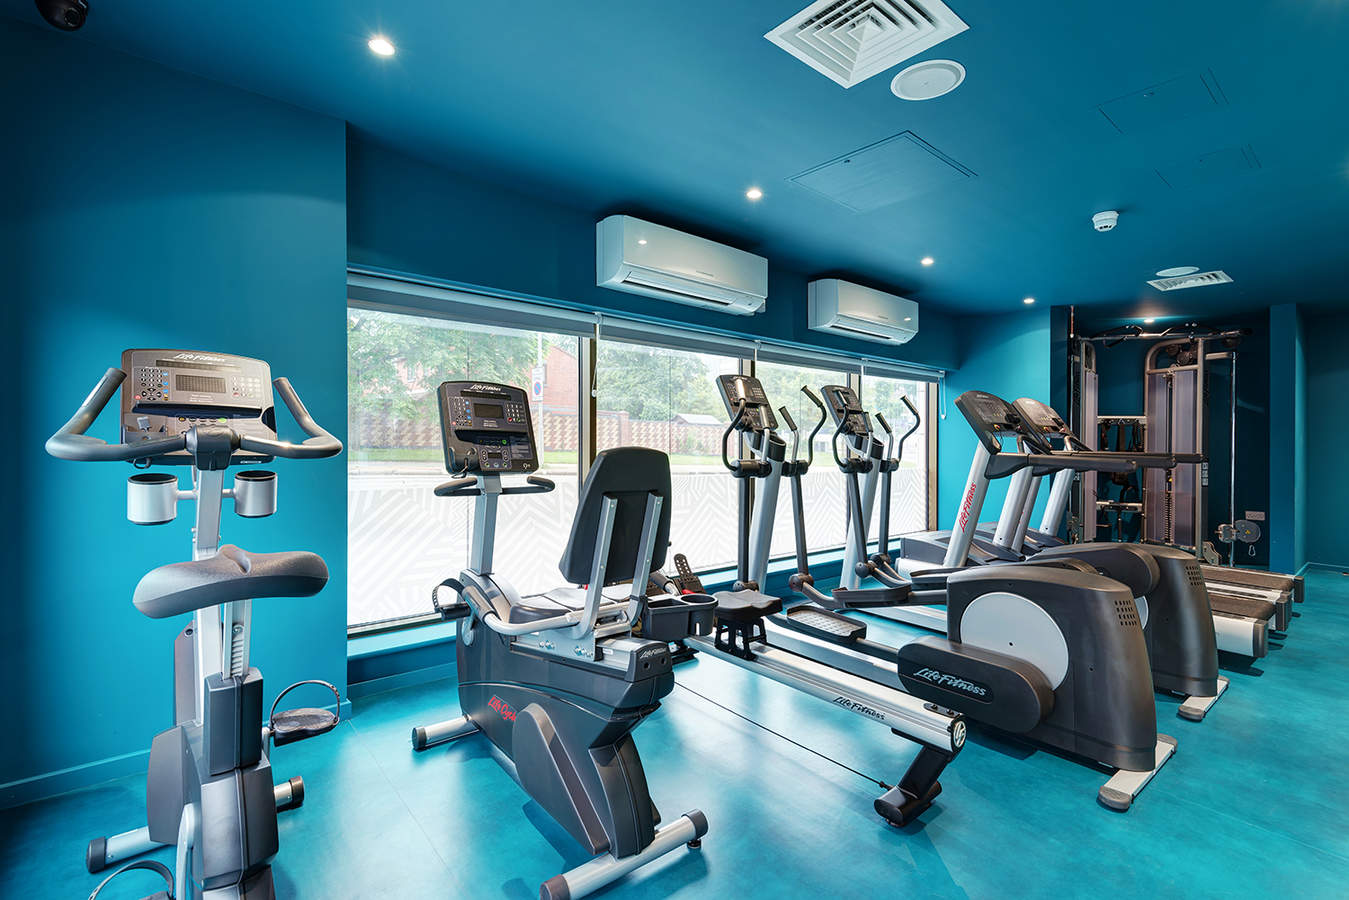 Fresh-student-living-liverpool-byrom-point-05-gym-photo-03_-_low_res